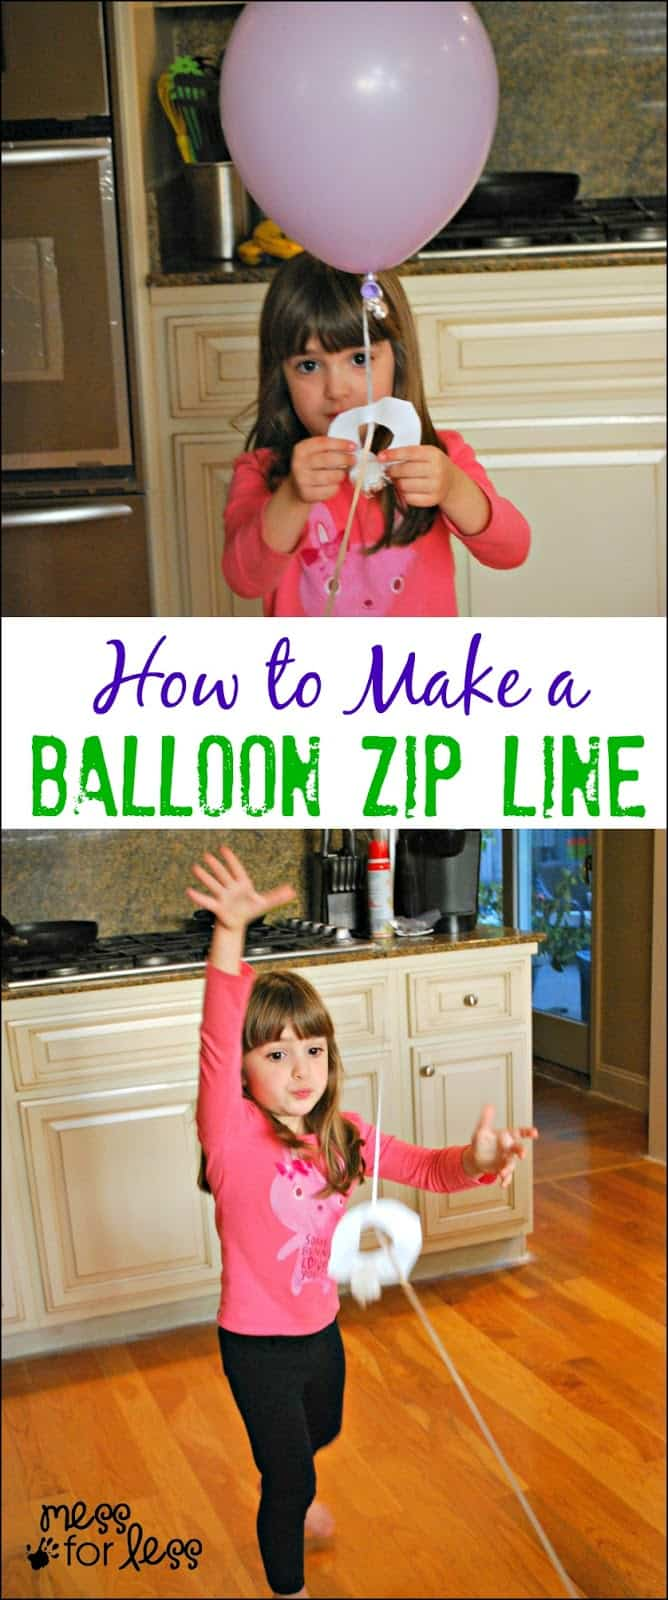 How to Make a Balloon Zip Line - find out how to use a helium balloon to make a fun zip line!